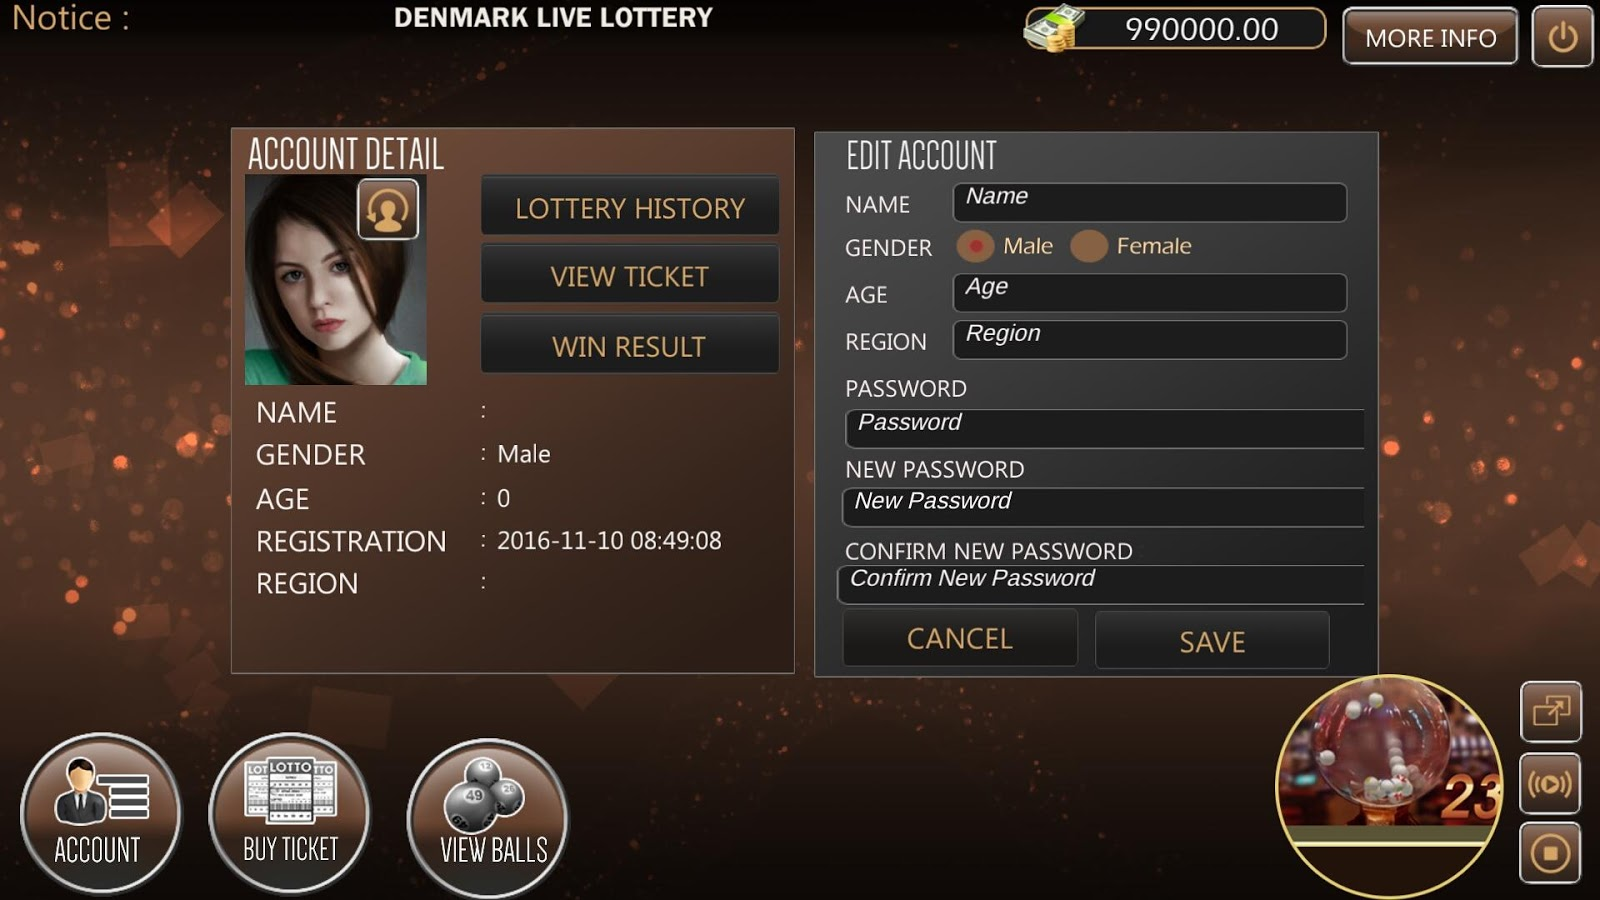 Denmark Free Live Lottery 4D- screenshot